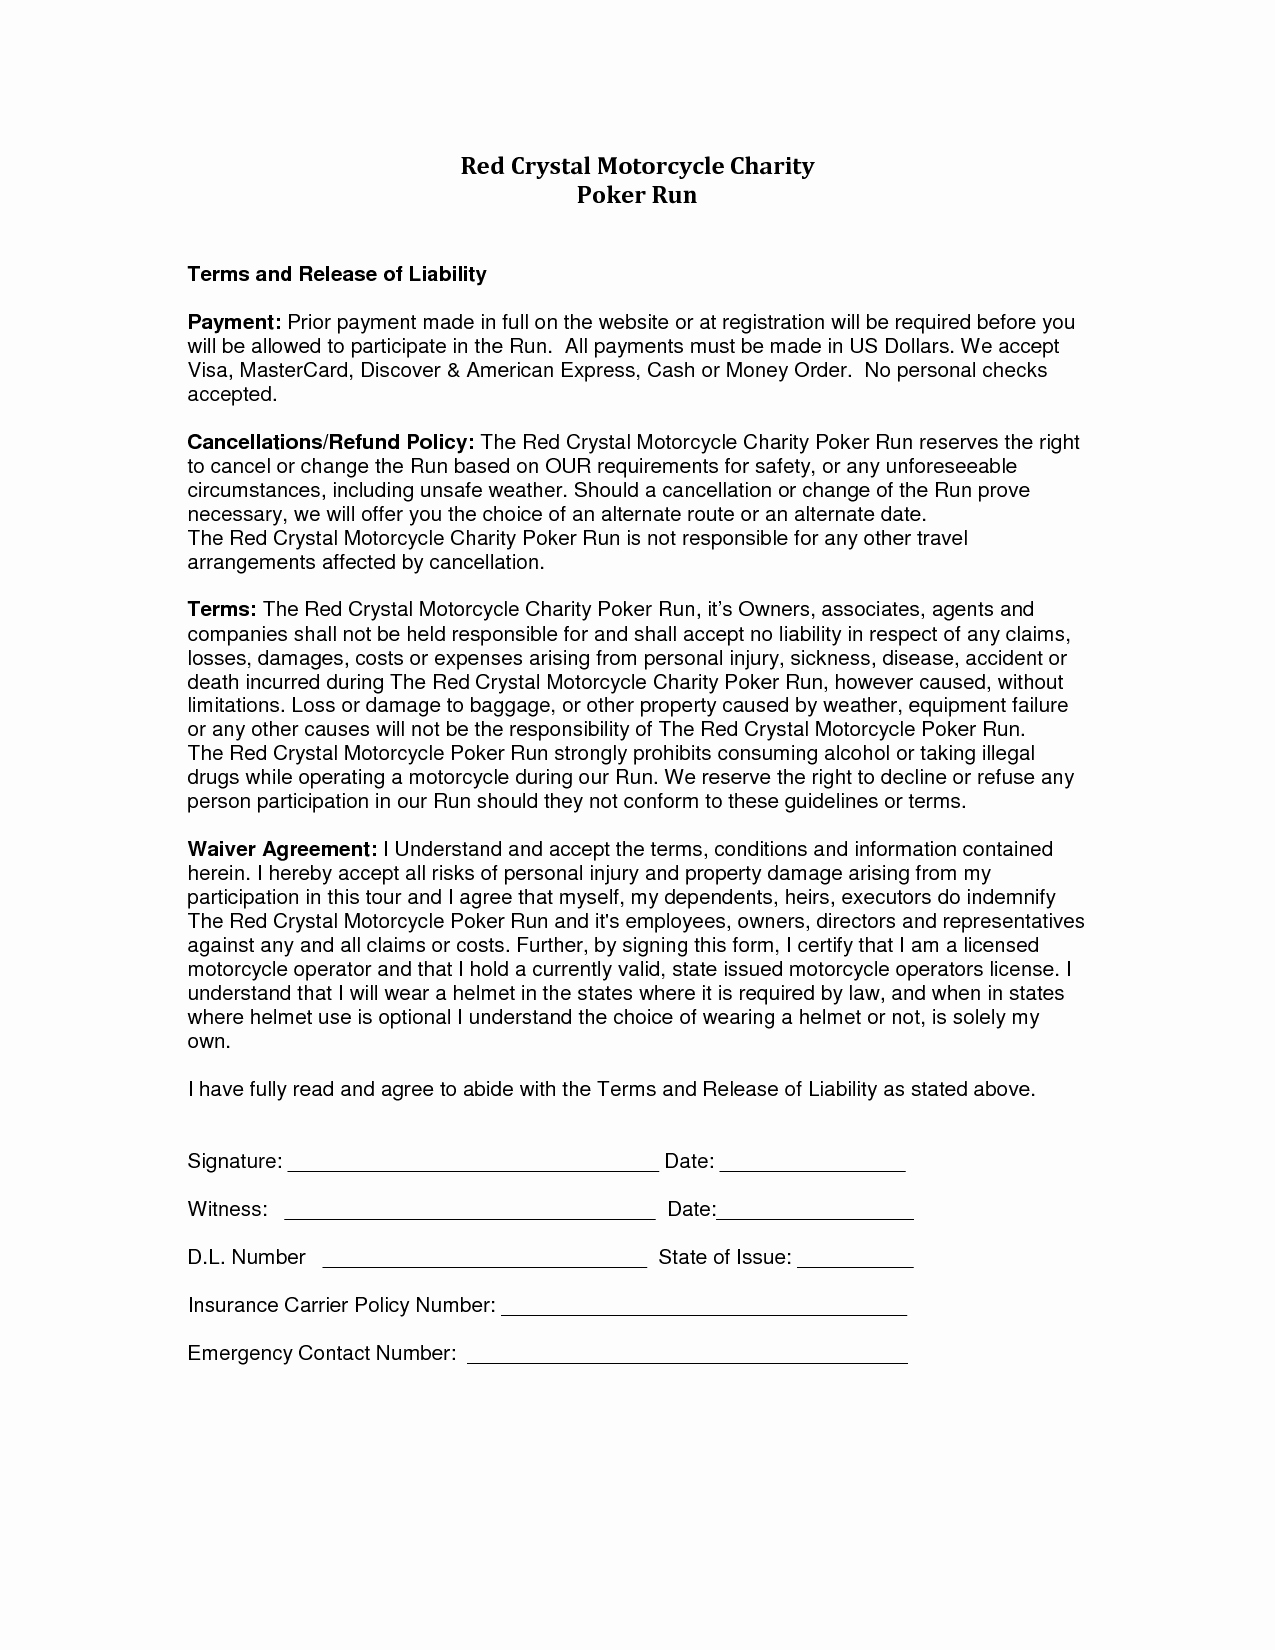 Liability Release form Template Elegant Liability Release form Template Free Printable Documents